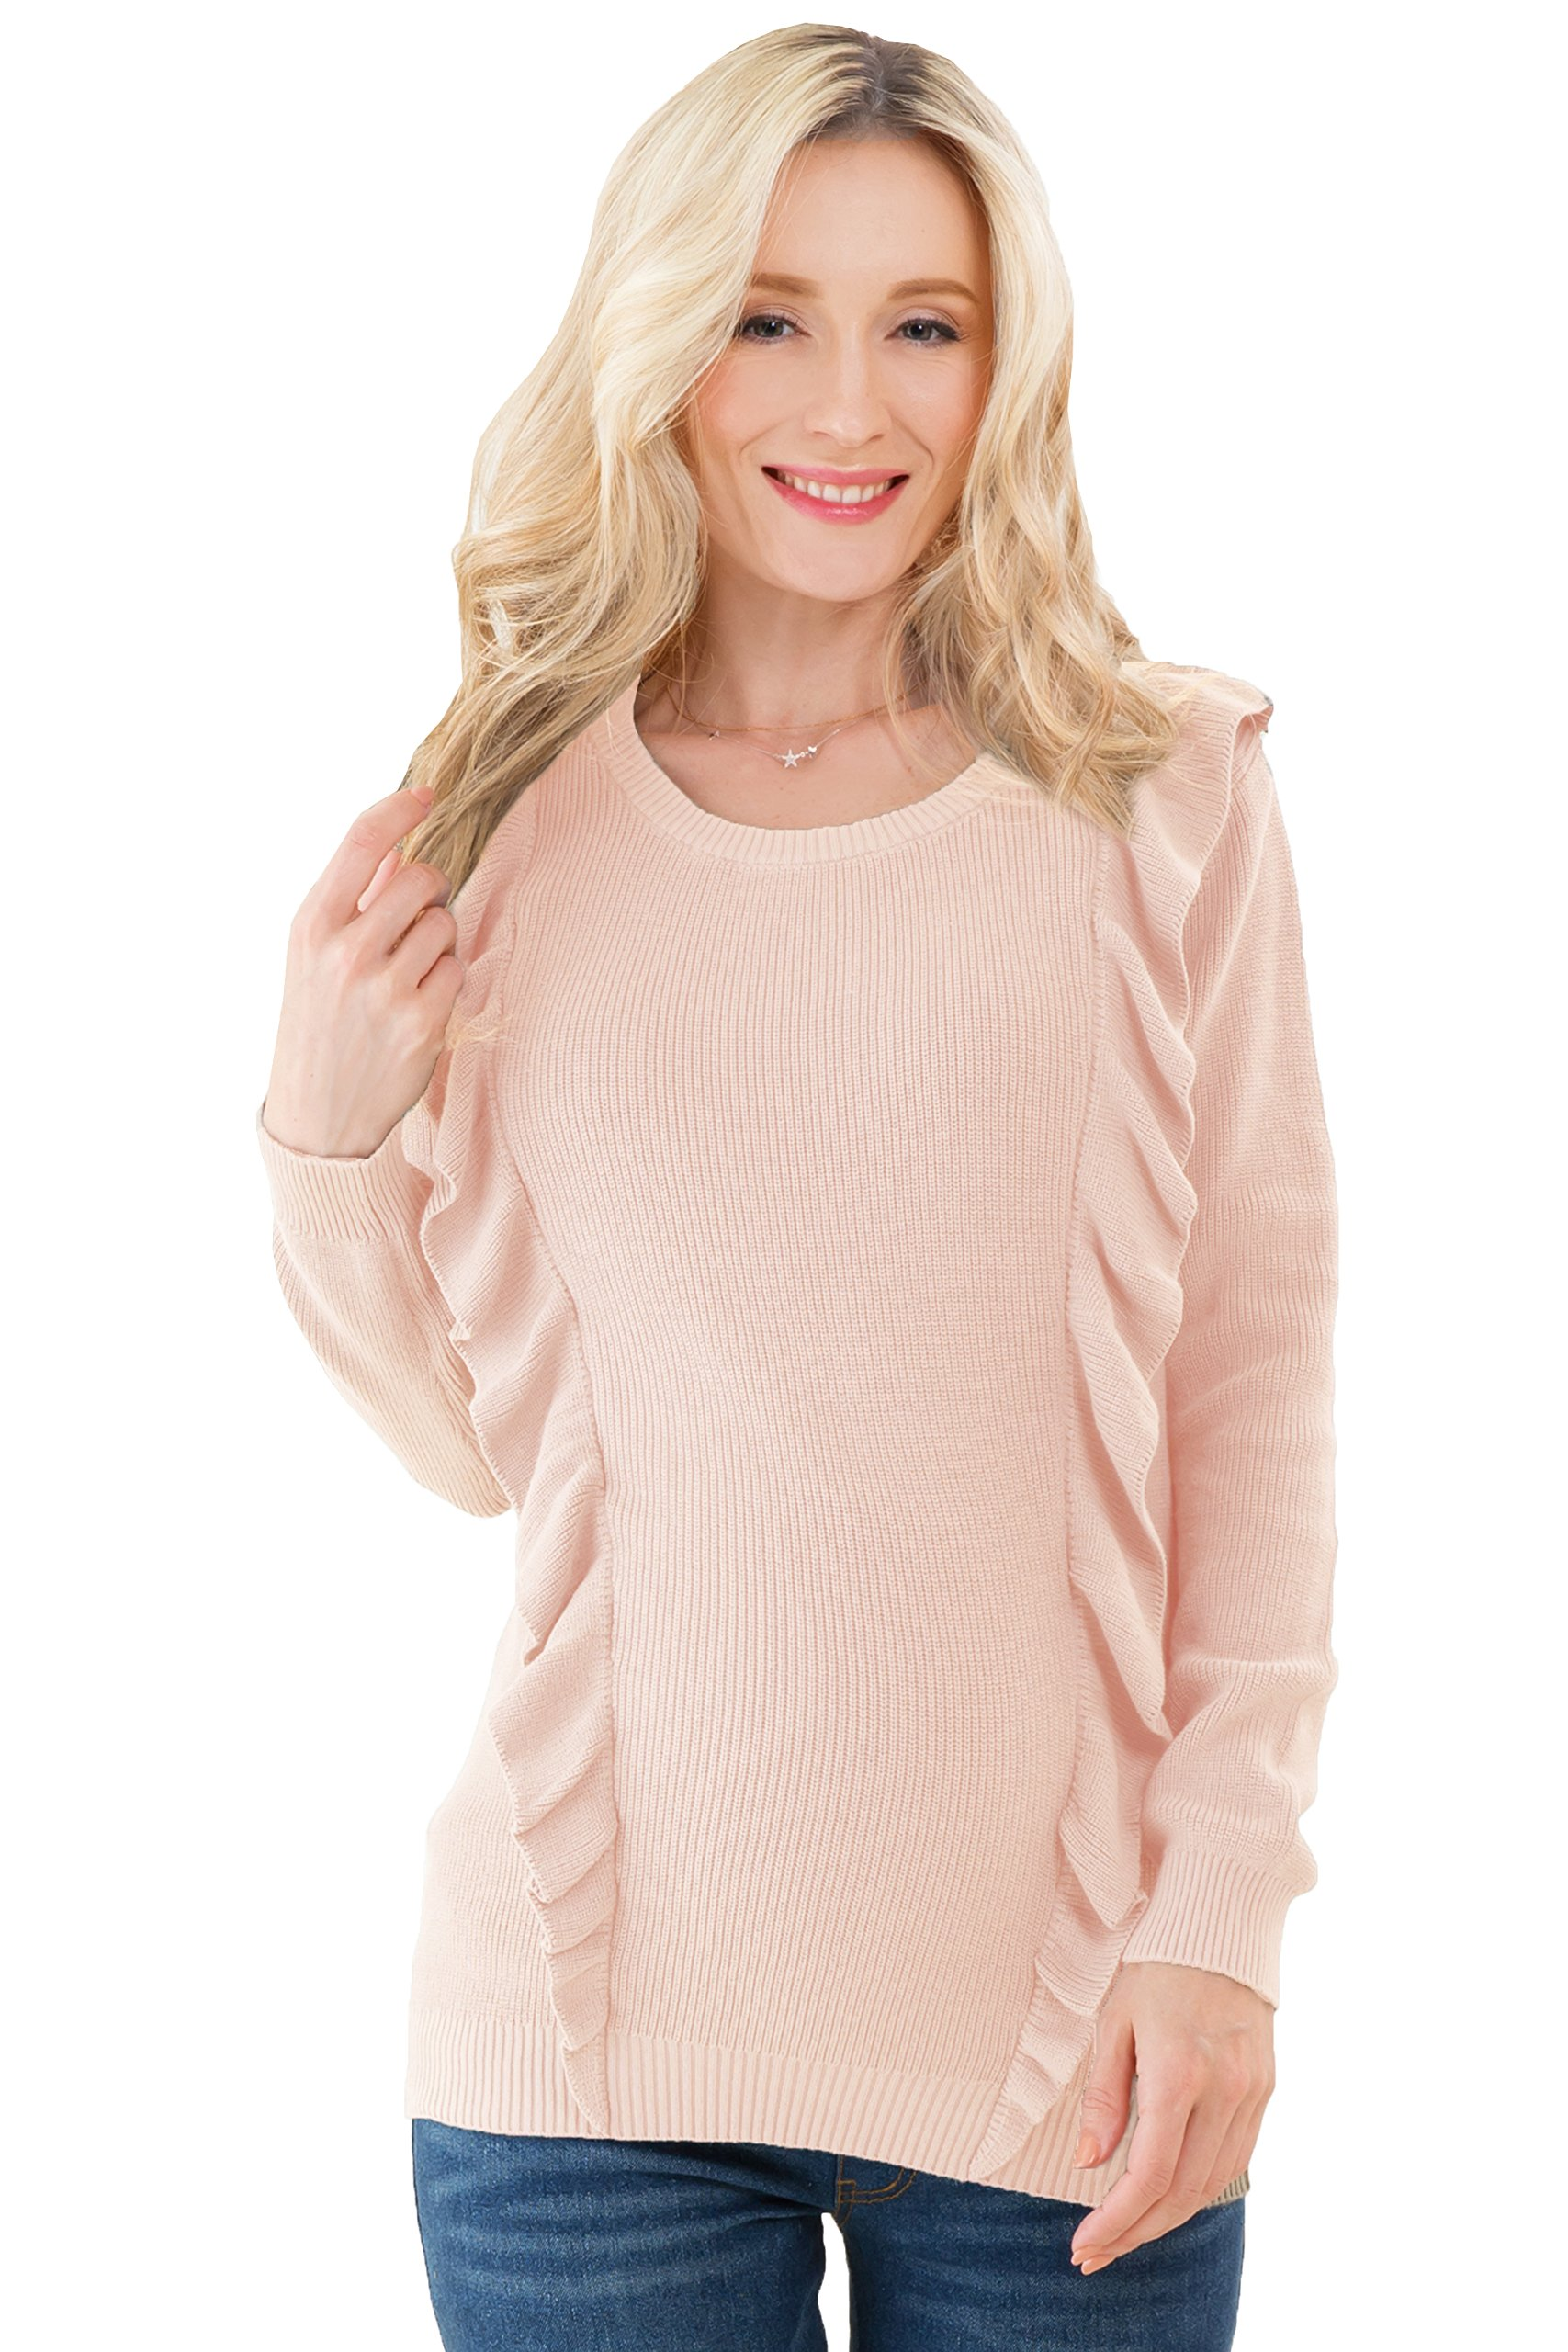 Sweet Mommy Maternity and Nursing Organic Cotton Frilled Knit Sweater Top